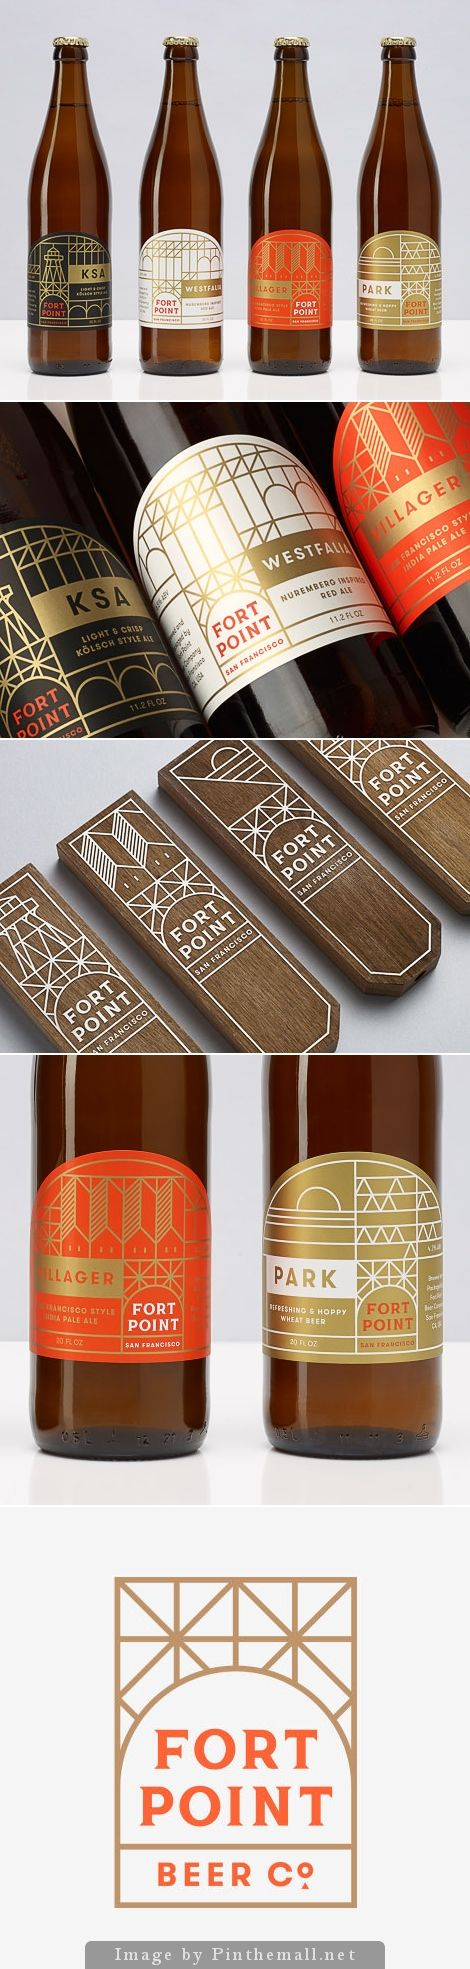 #packaging #branding #design #beer